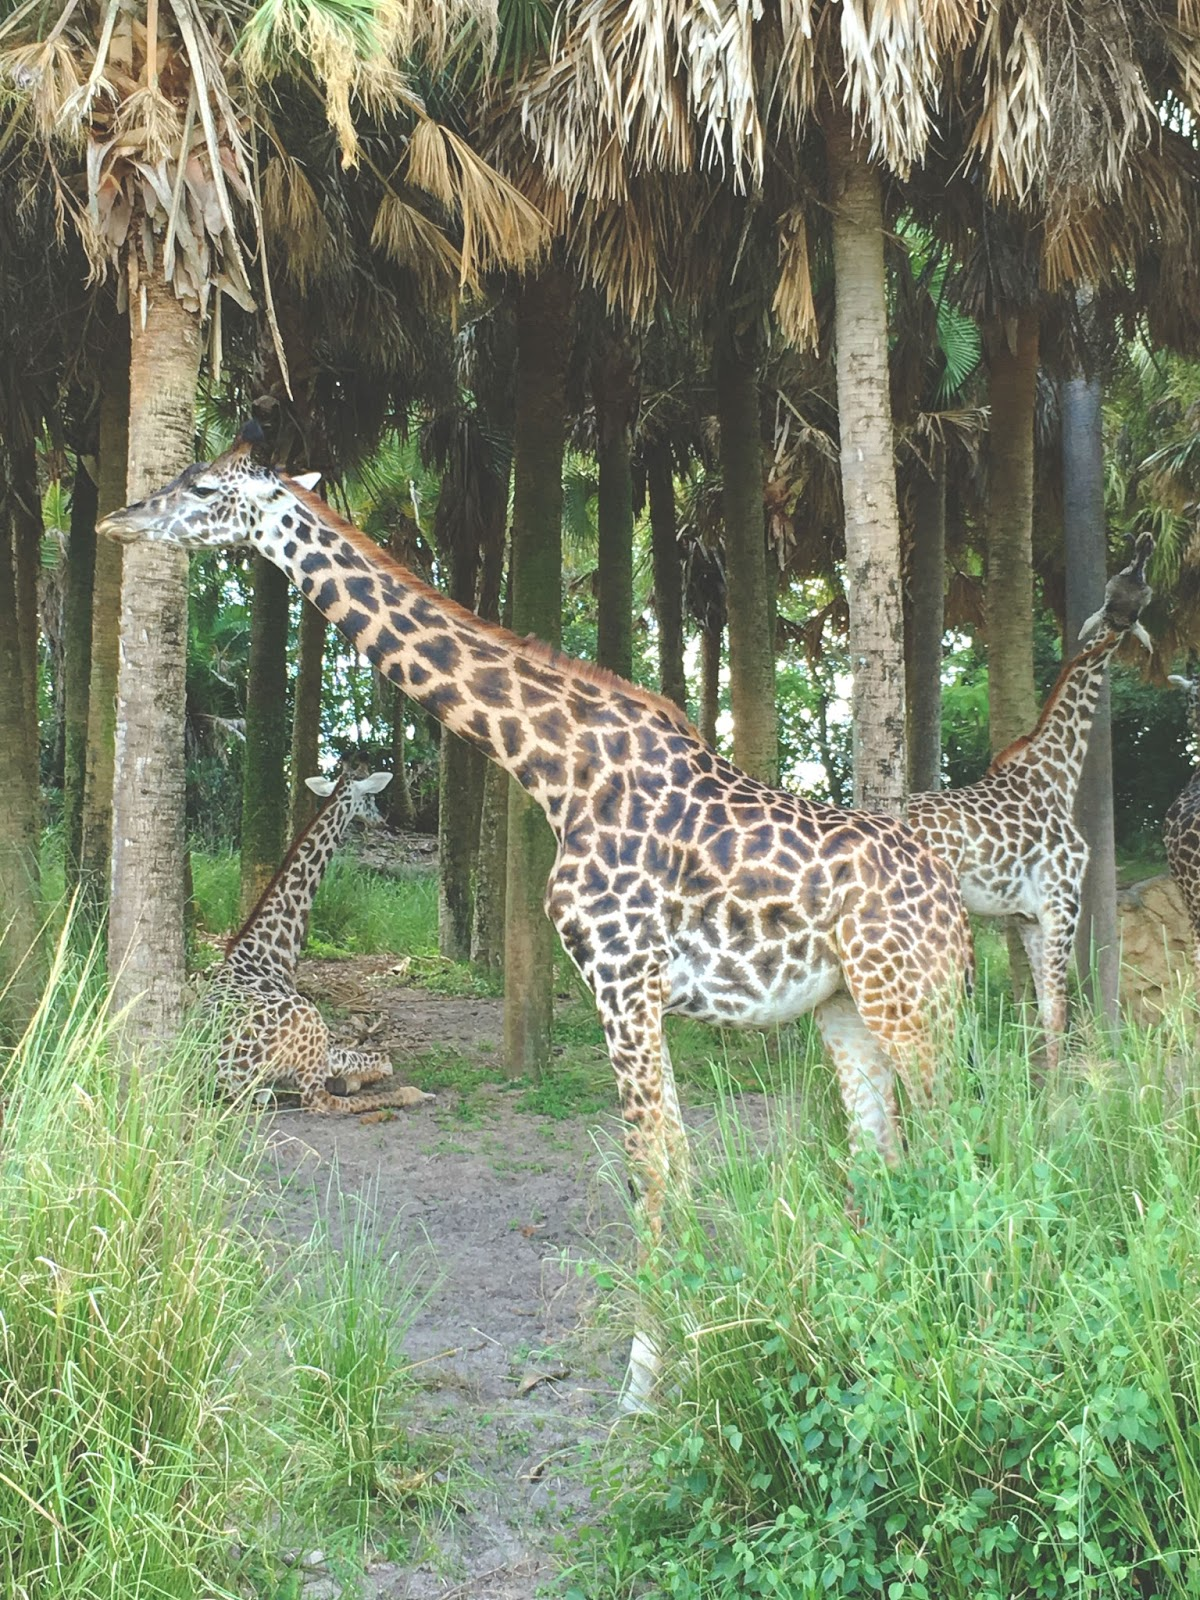 safari at Animal Kingdom in Disney World, Florida